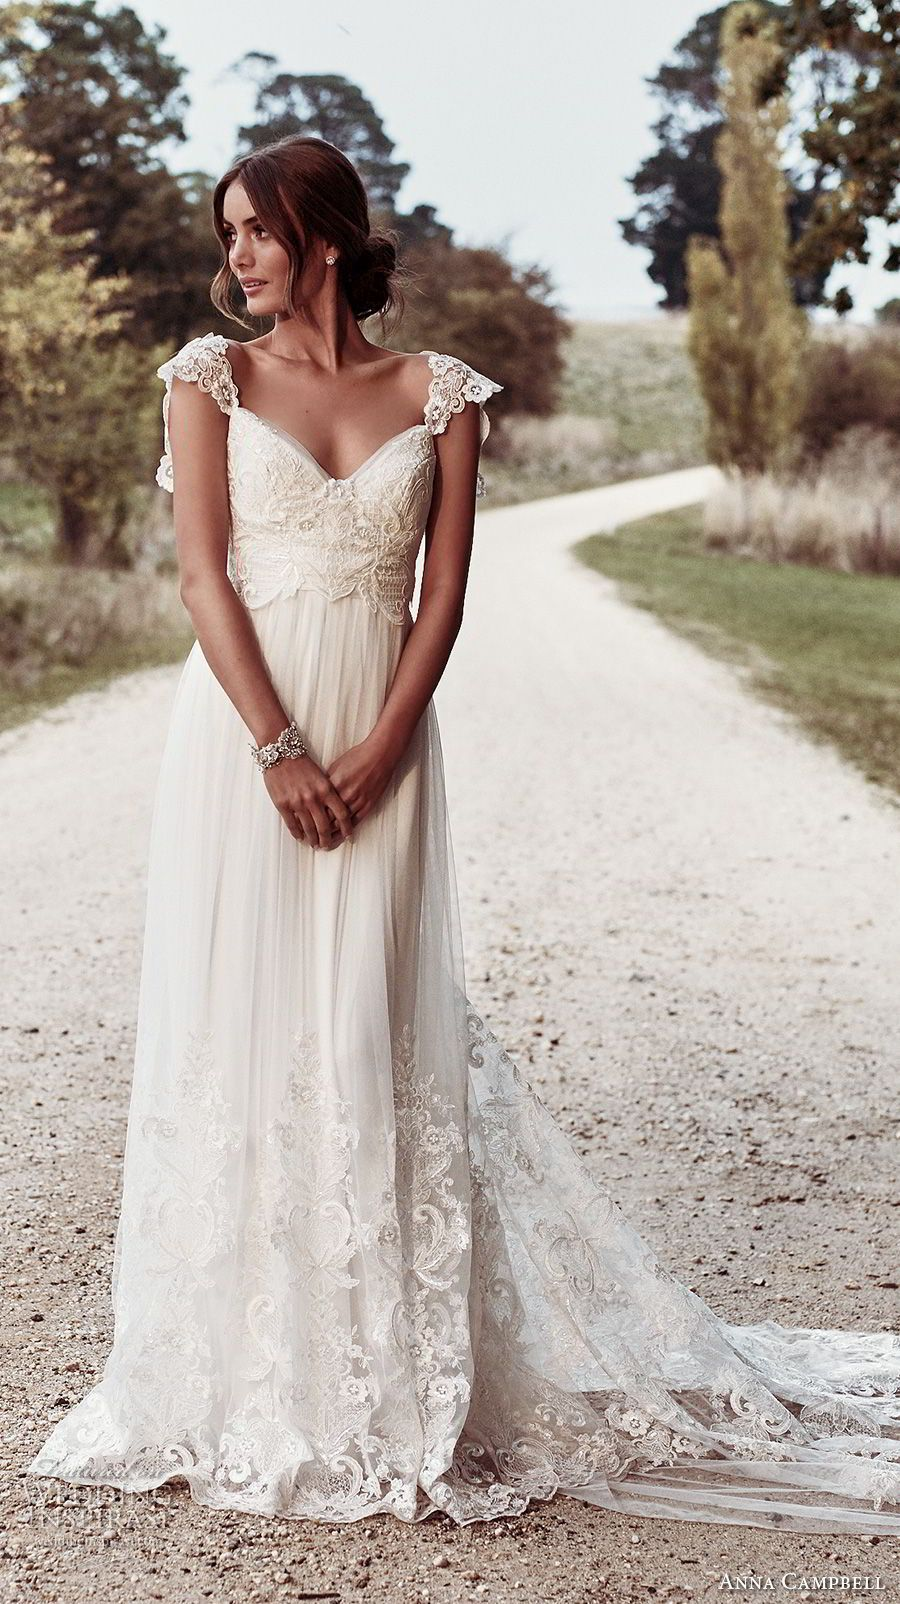 Anna campbell wedding dresses u uceternal heartud bridal